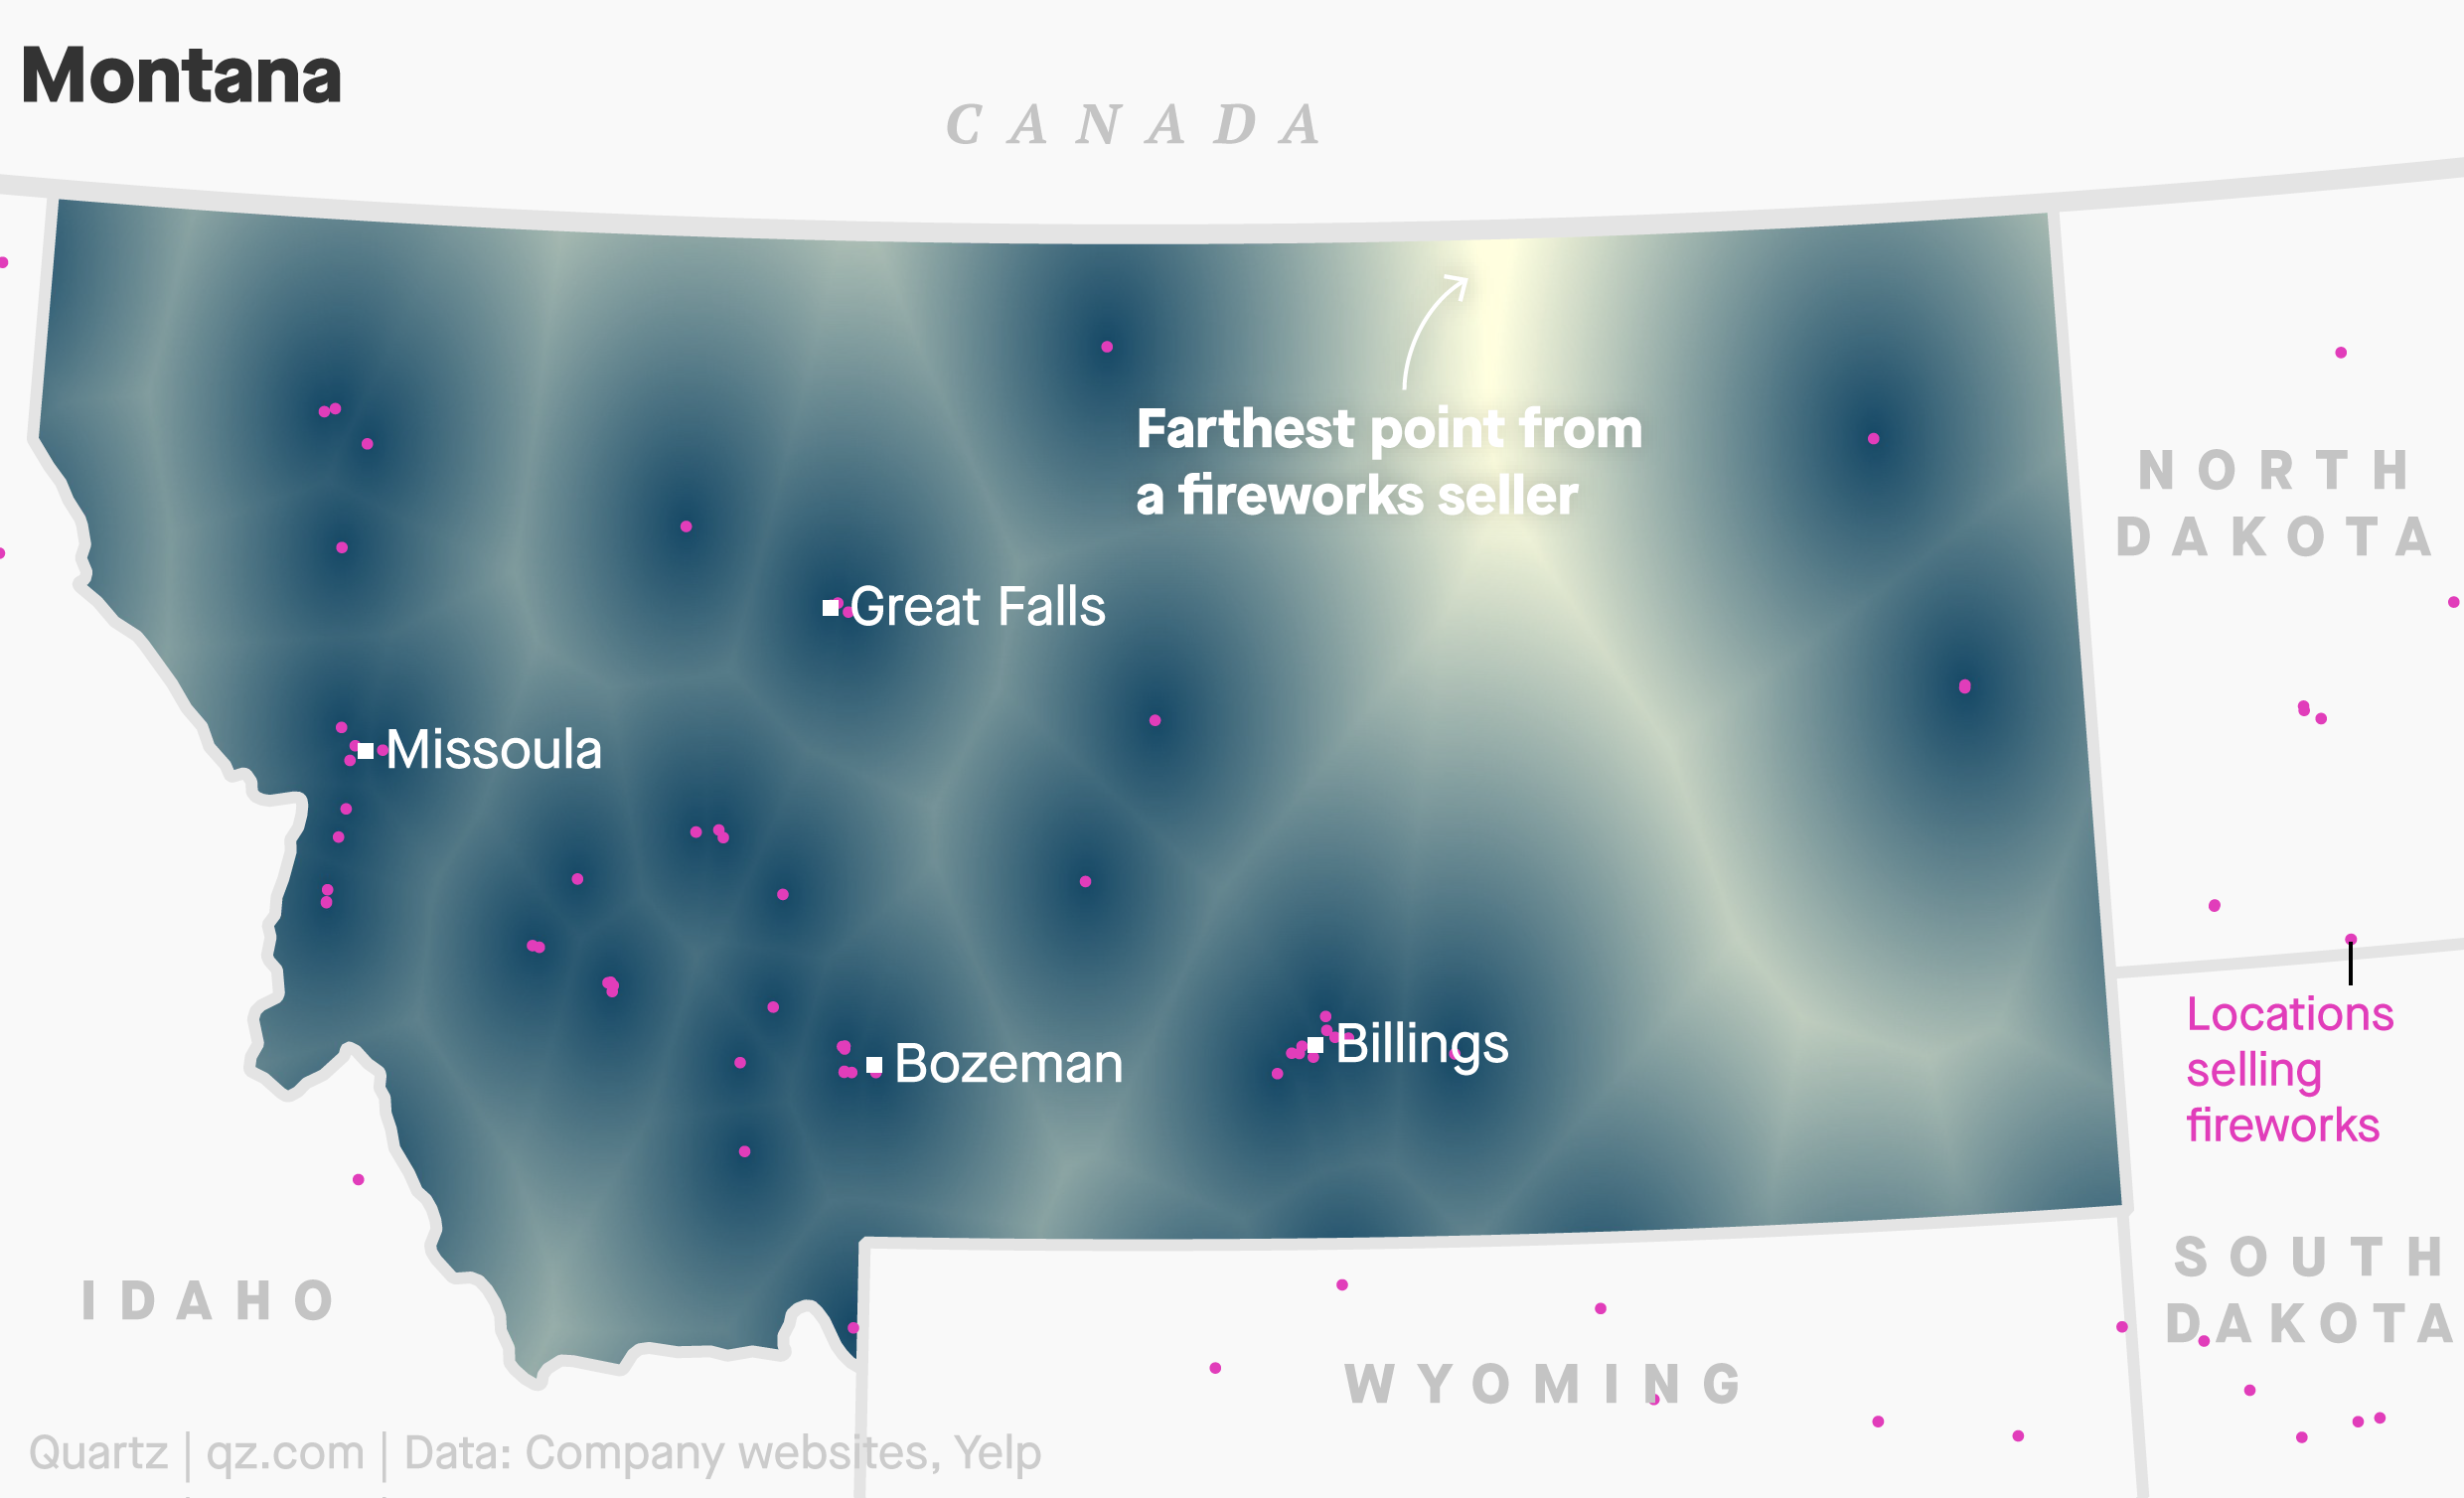 A map of locations selling fireworks in Montana